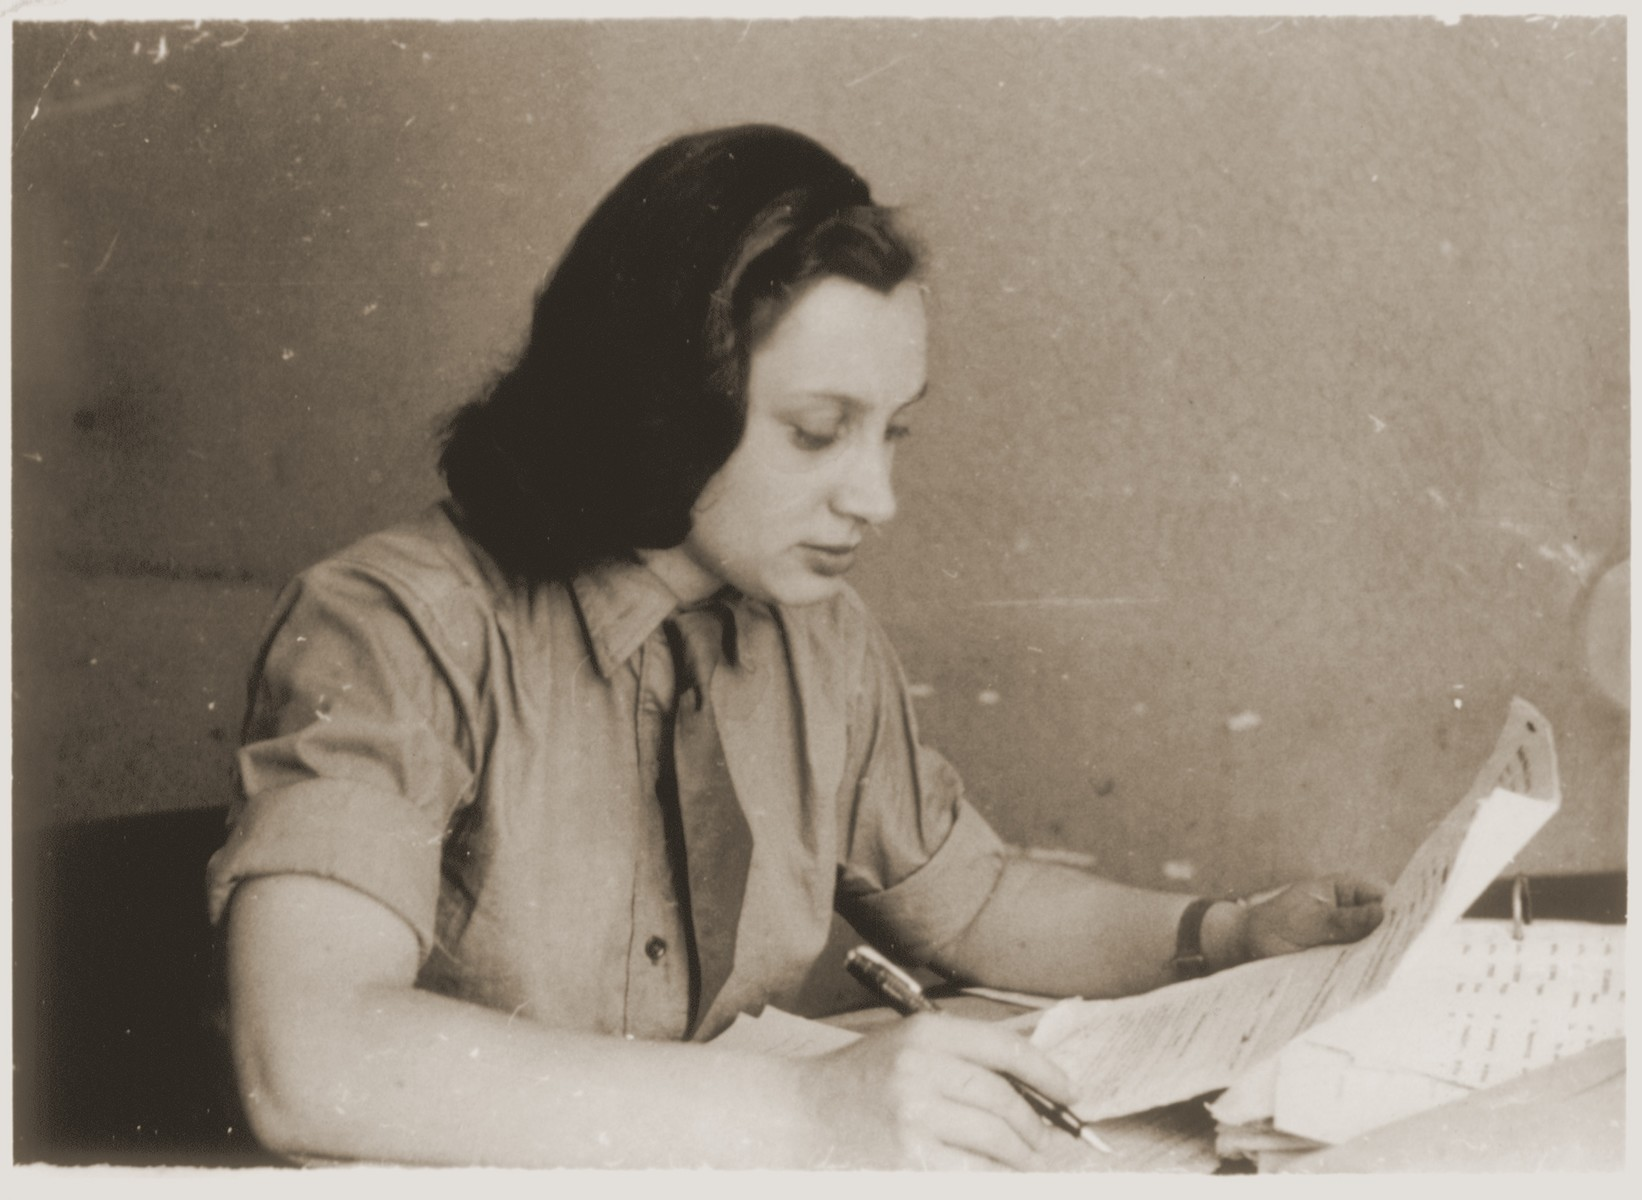 A young Jewish woman works at her desk in Munich, Germany.  Pictured is Anna Gurwitsch.